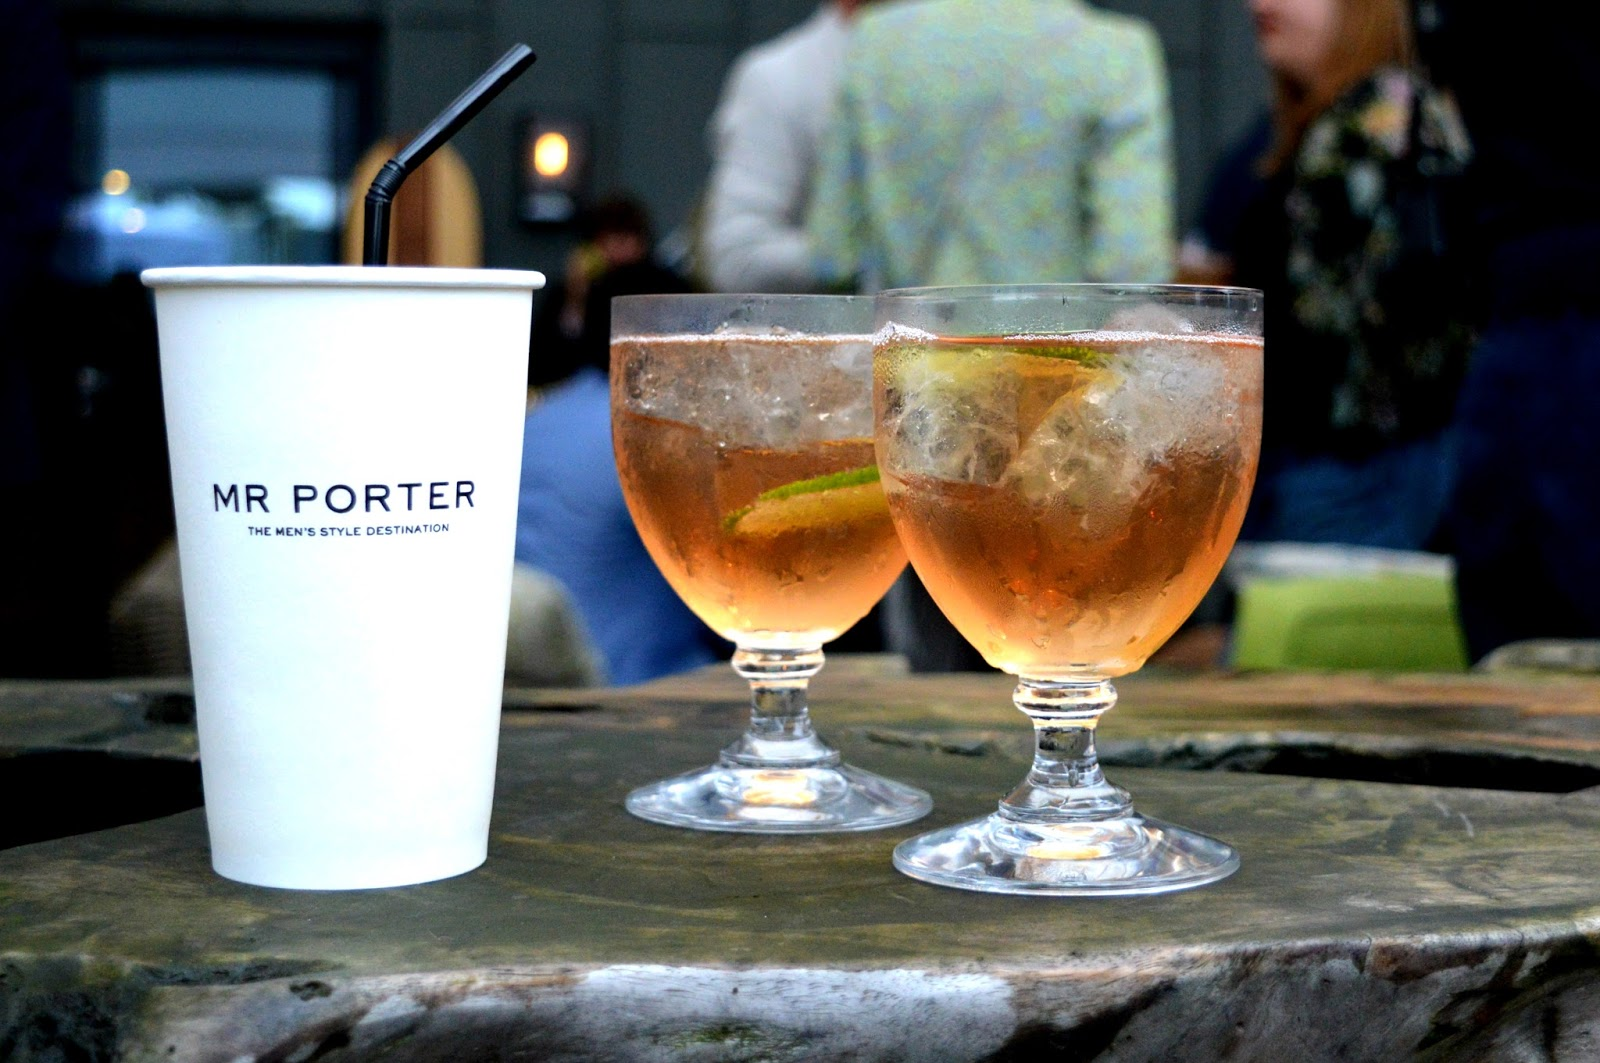 Le Meilleur The Mr Porter Summer Social That Dapper Chap Ce Mois Ci